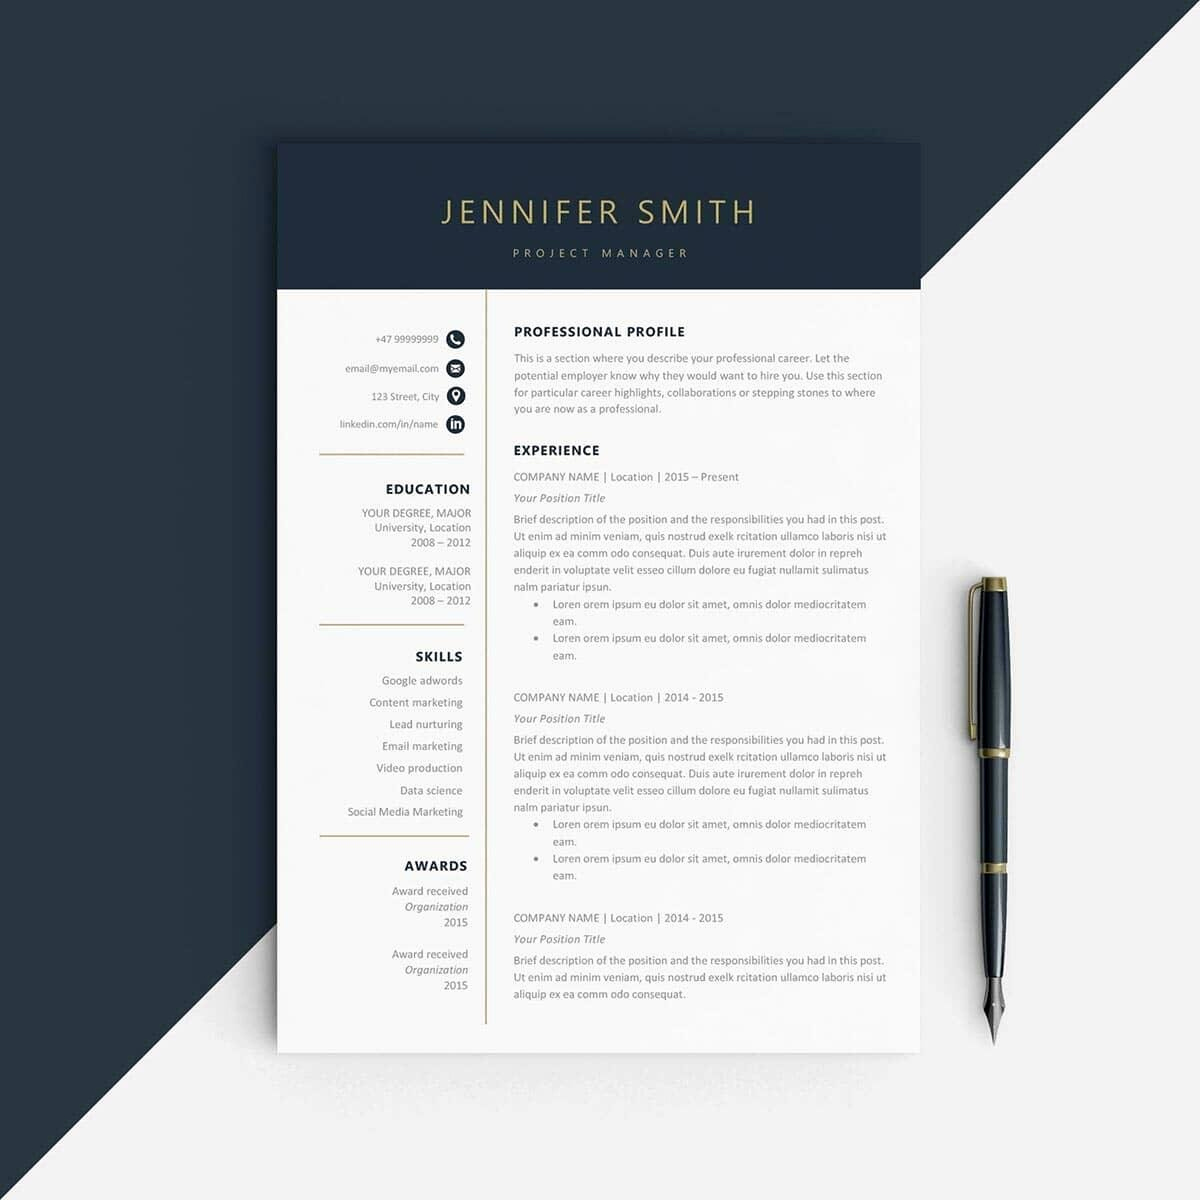 Resume Template with Photo Elegant Best Resume Templates 15 Examples to Download & Use Right